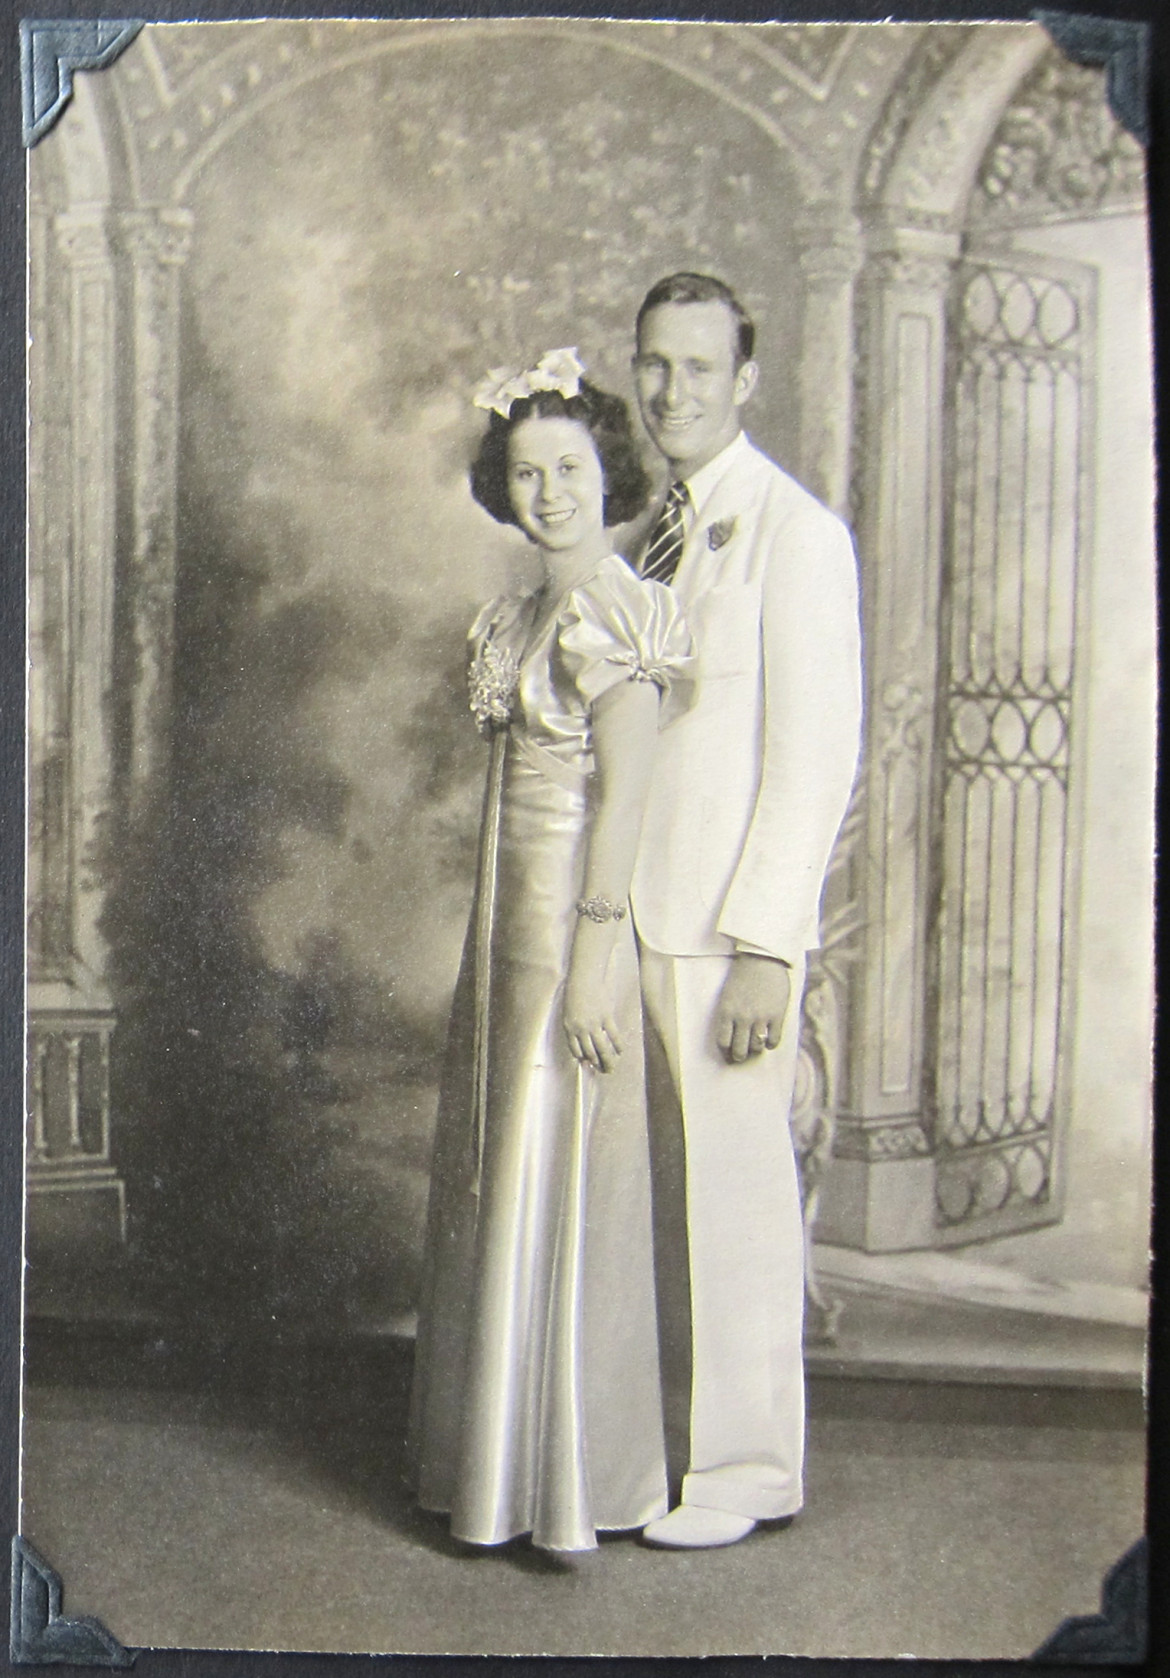 Marjorie and Bob.  A prom photo maybe?